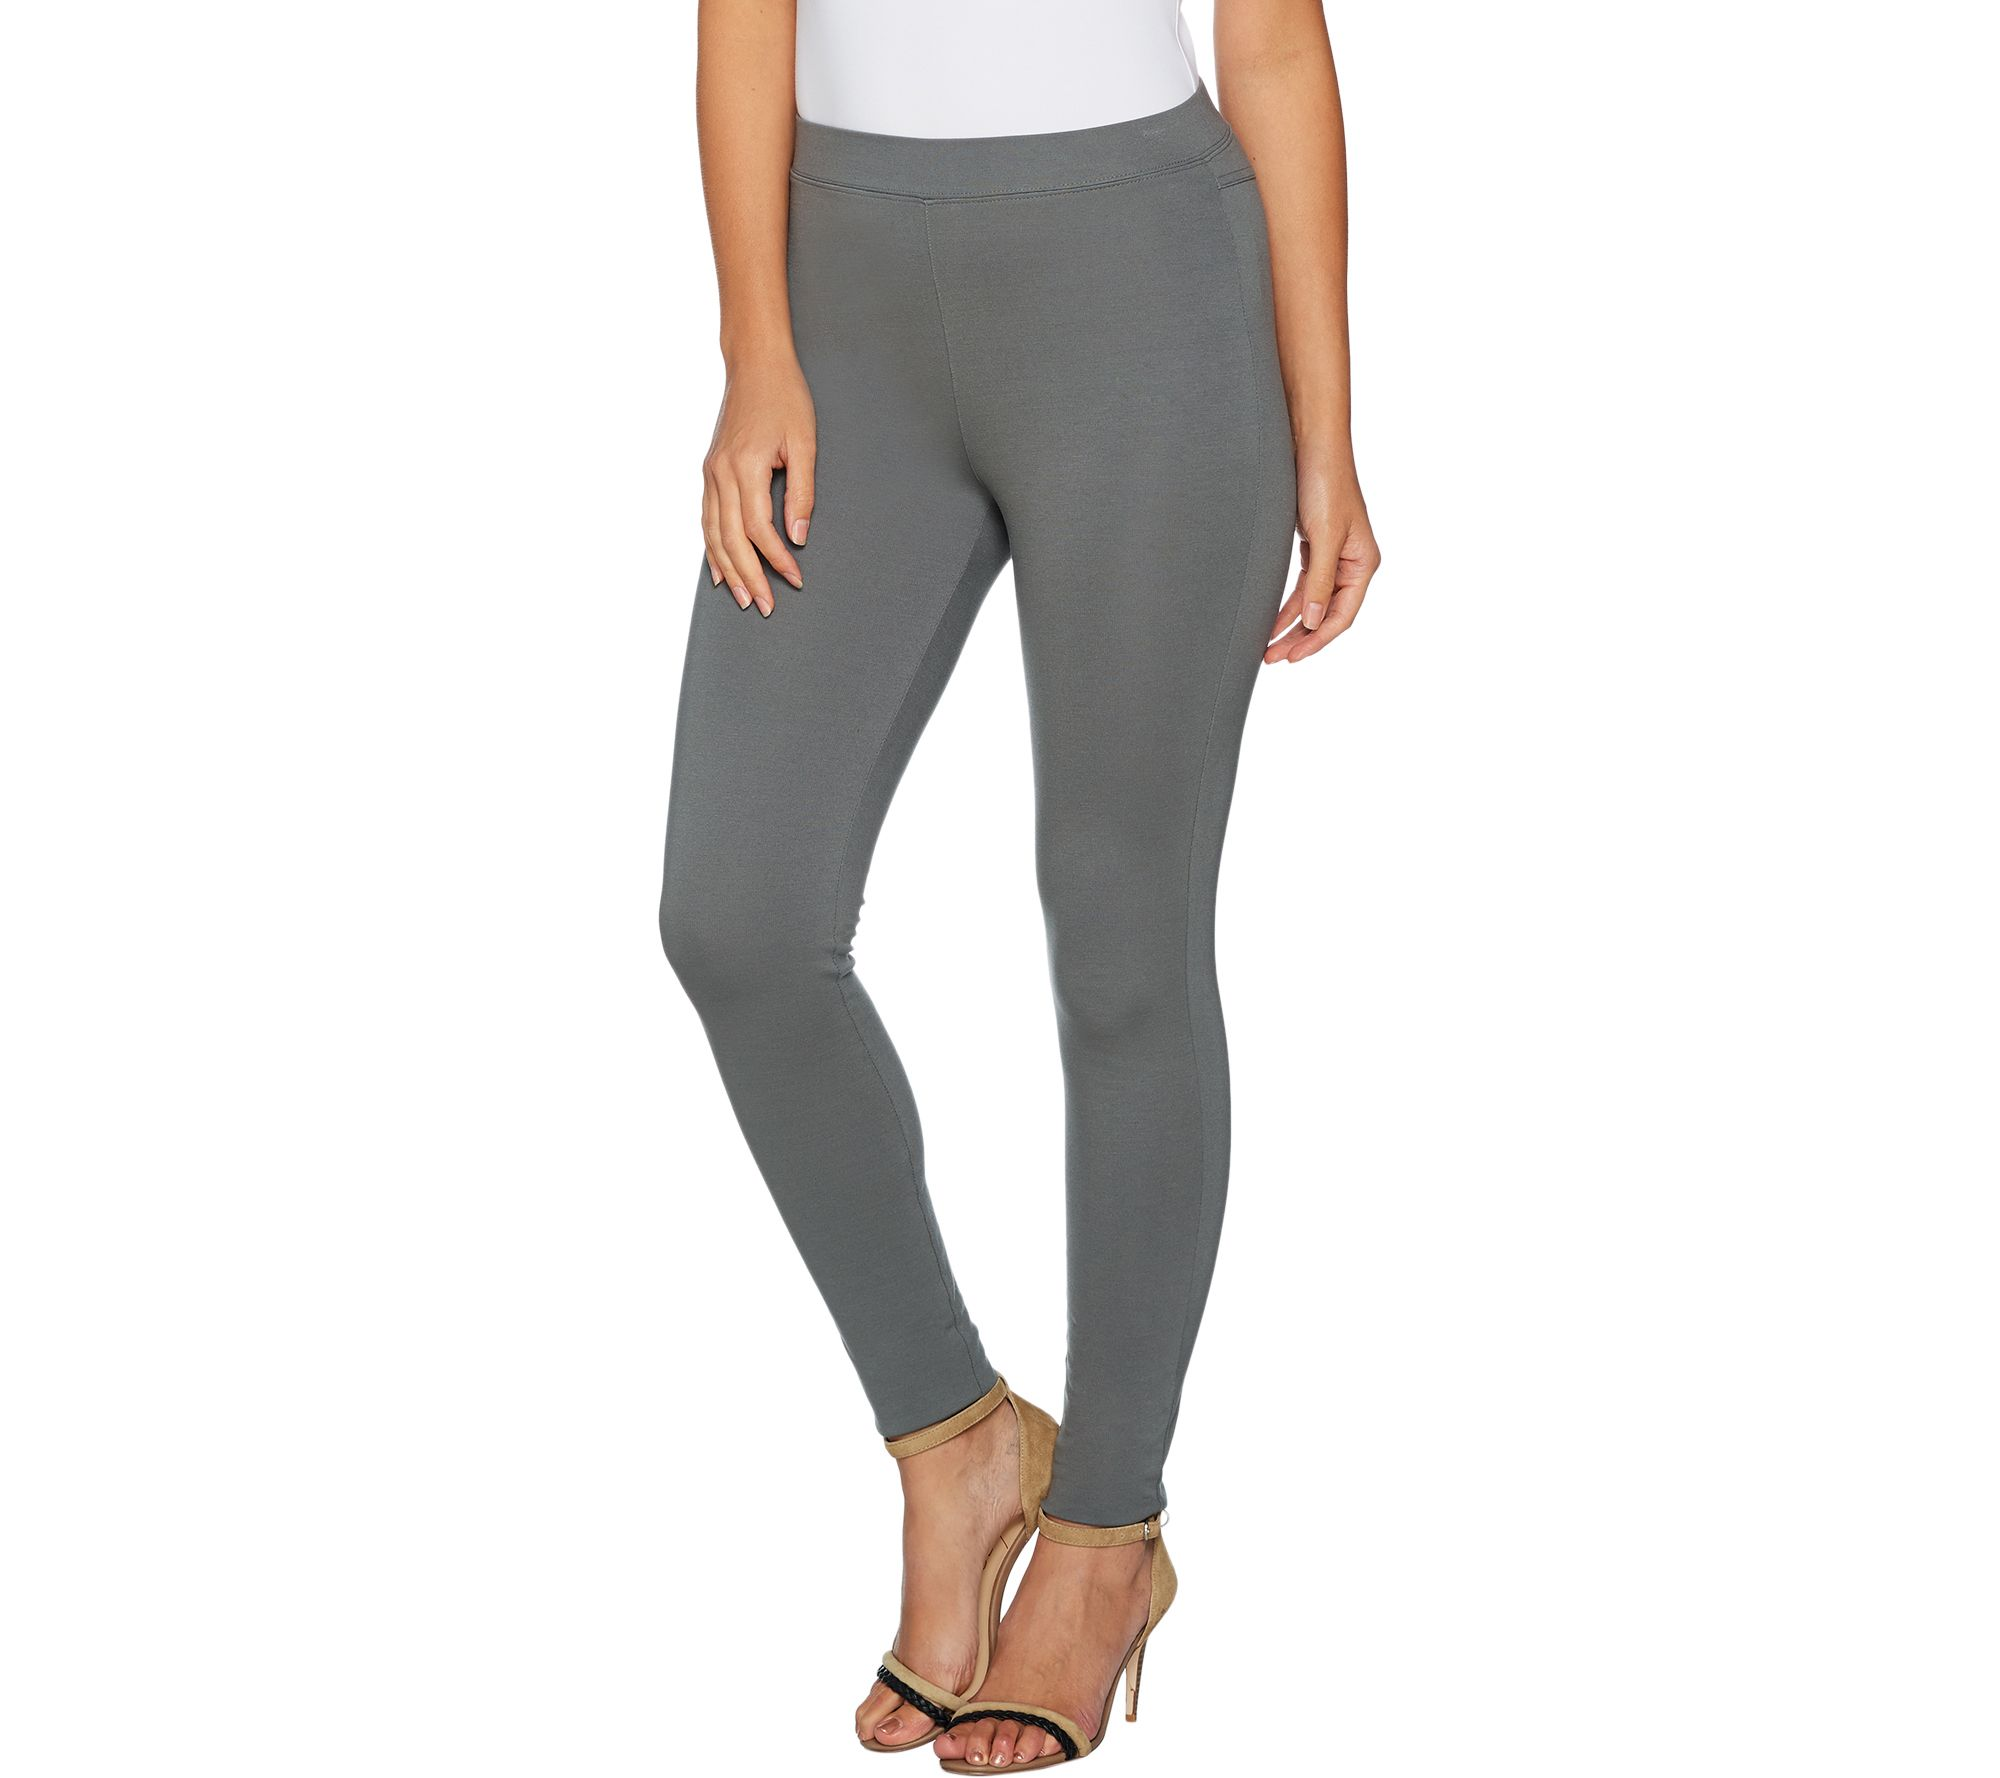 Women with Control Regular Fit Pull-on Knit Leggings Chocolate X-Large Size QVC